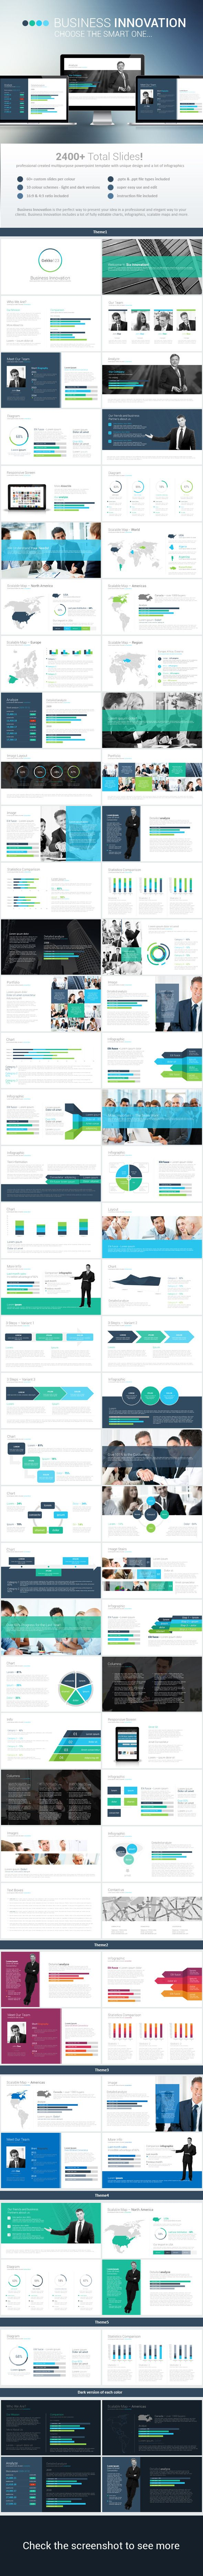 Business Innovation Powerpoint Template - PowerPoint Templates Presentation Templates